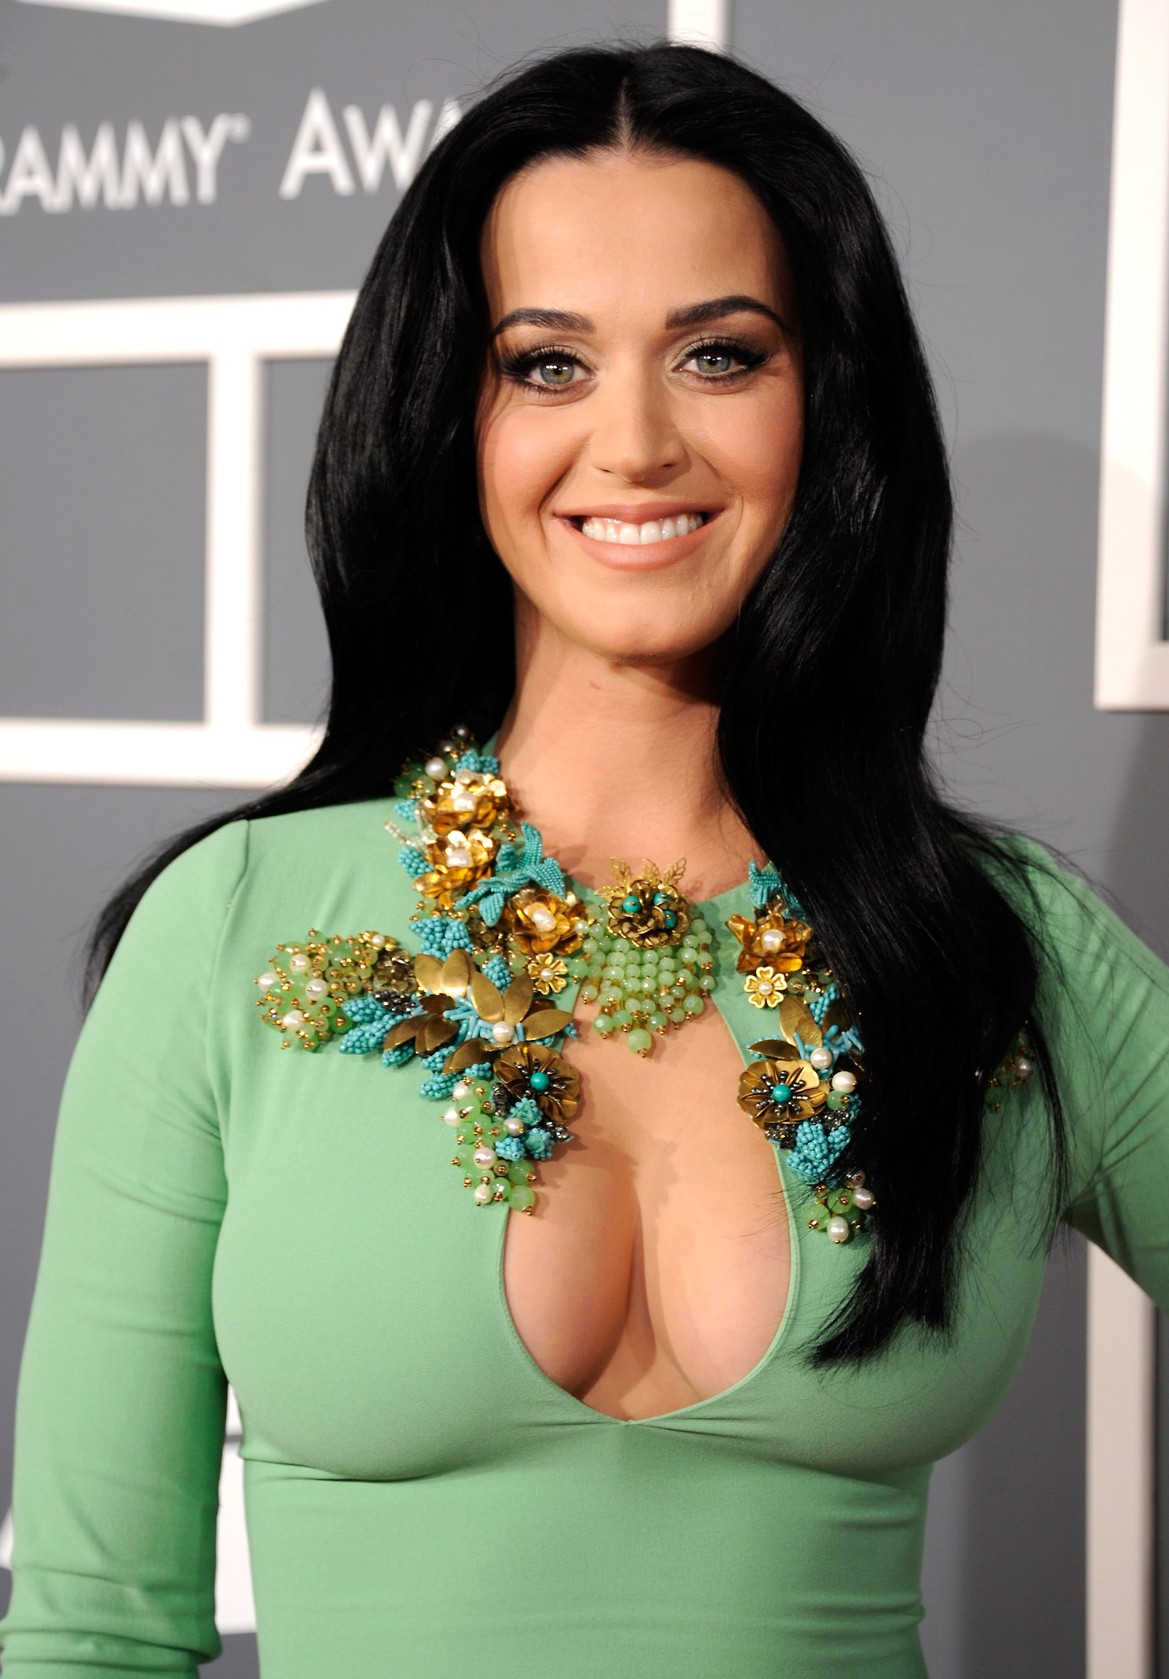 katy perry fotos 10 wallpaper